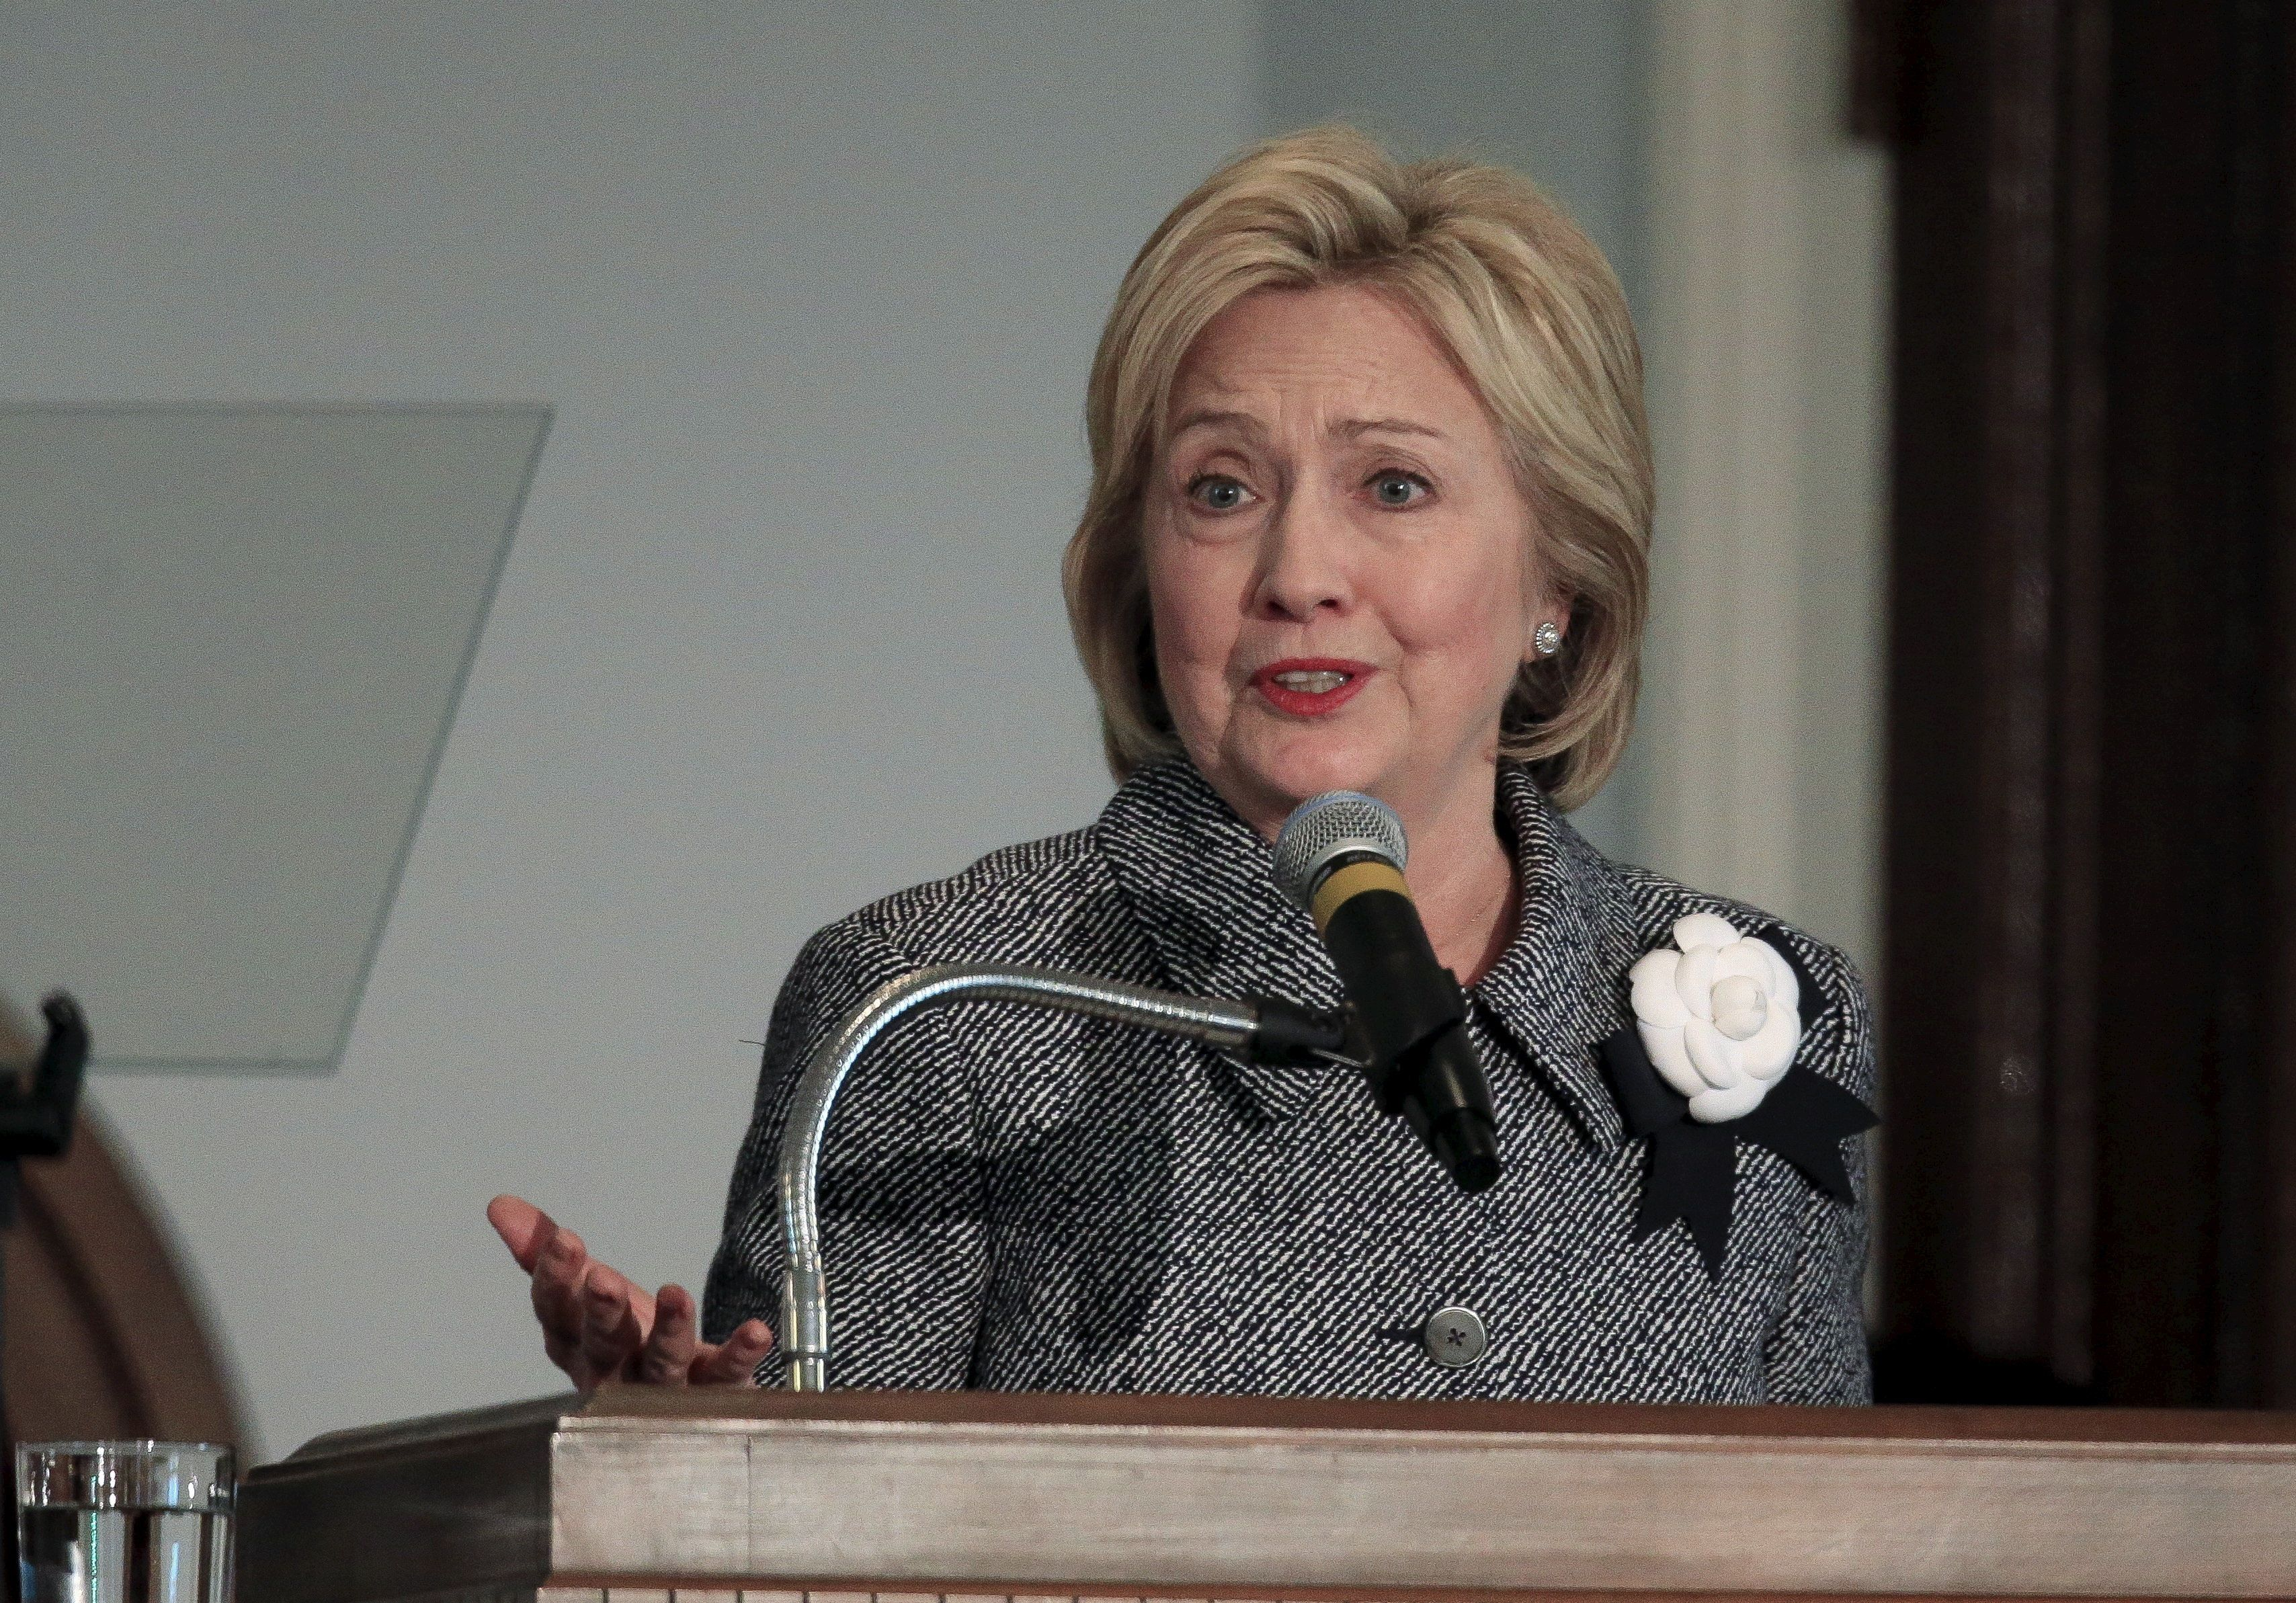 Hillary Clinton, seen here speaking at the 60th Anniversary of the Montgomery Bus Boycott on Dec. 1, 2015, received a hero's